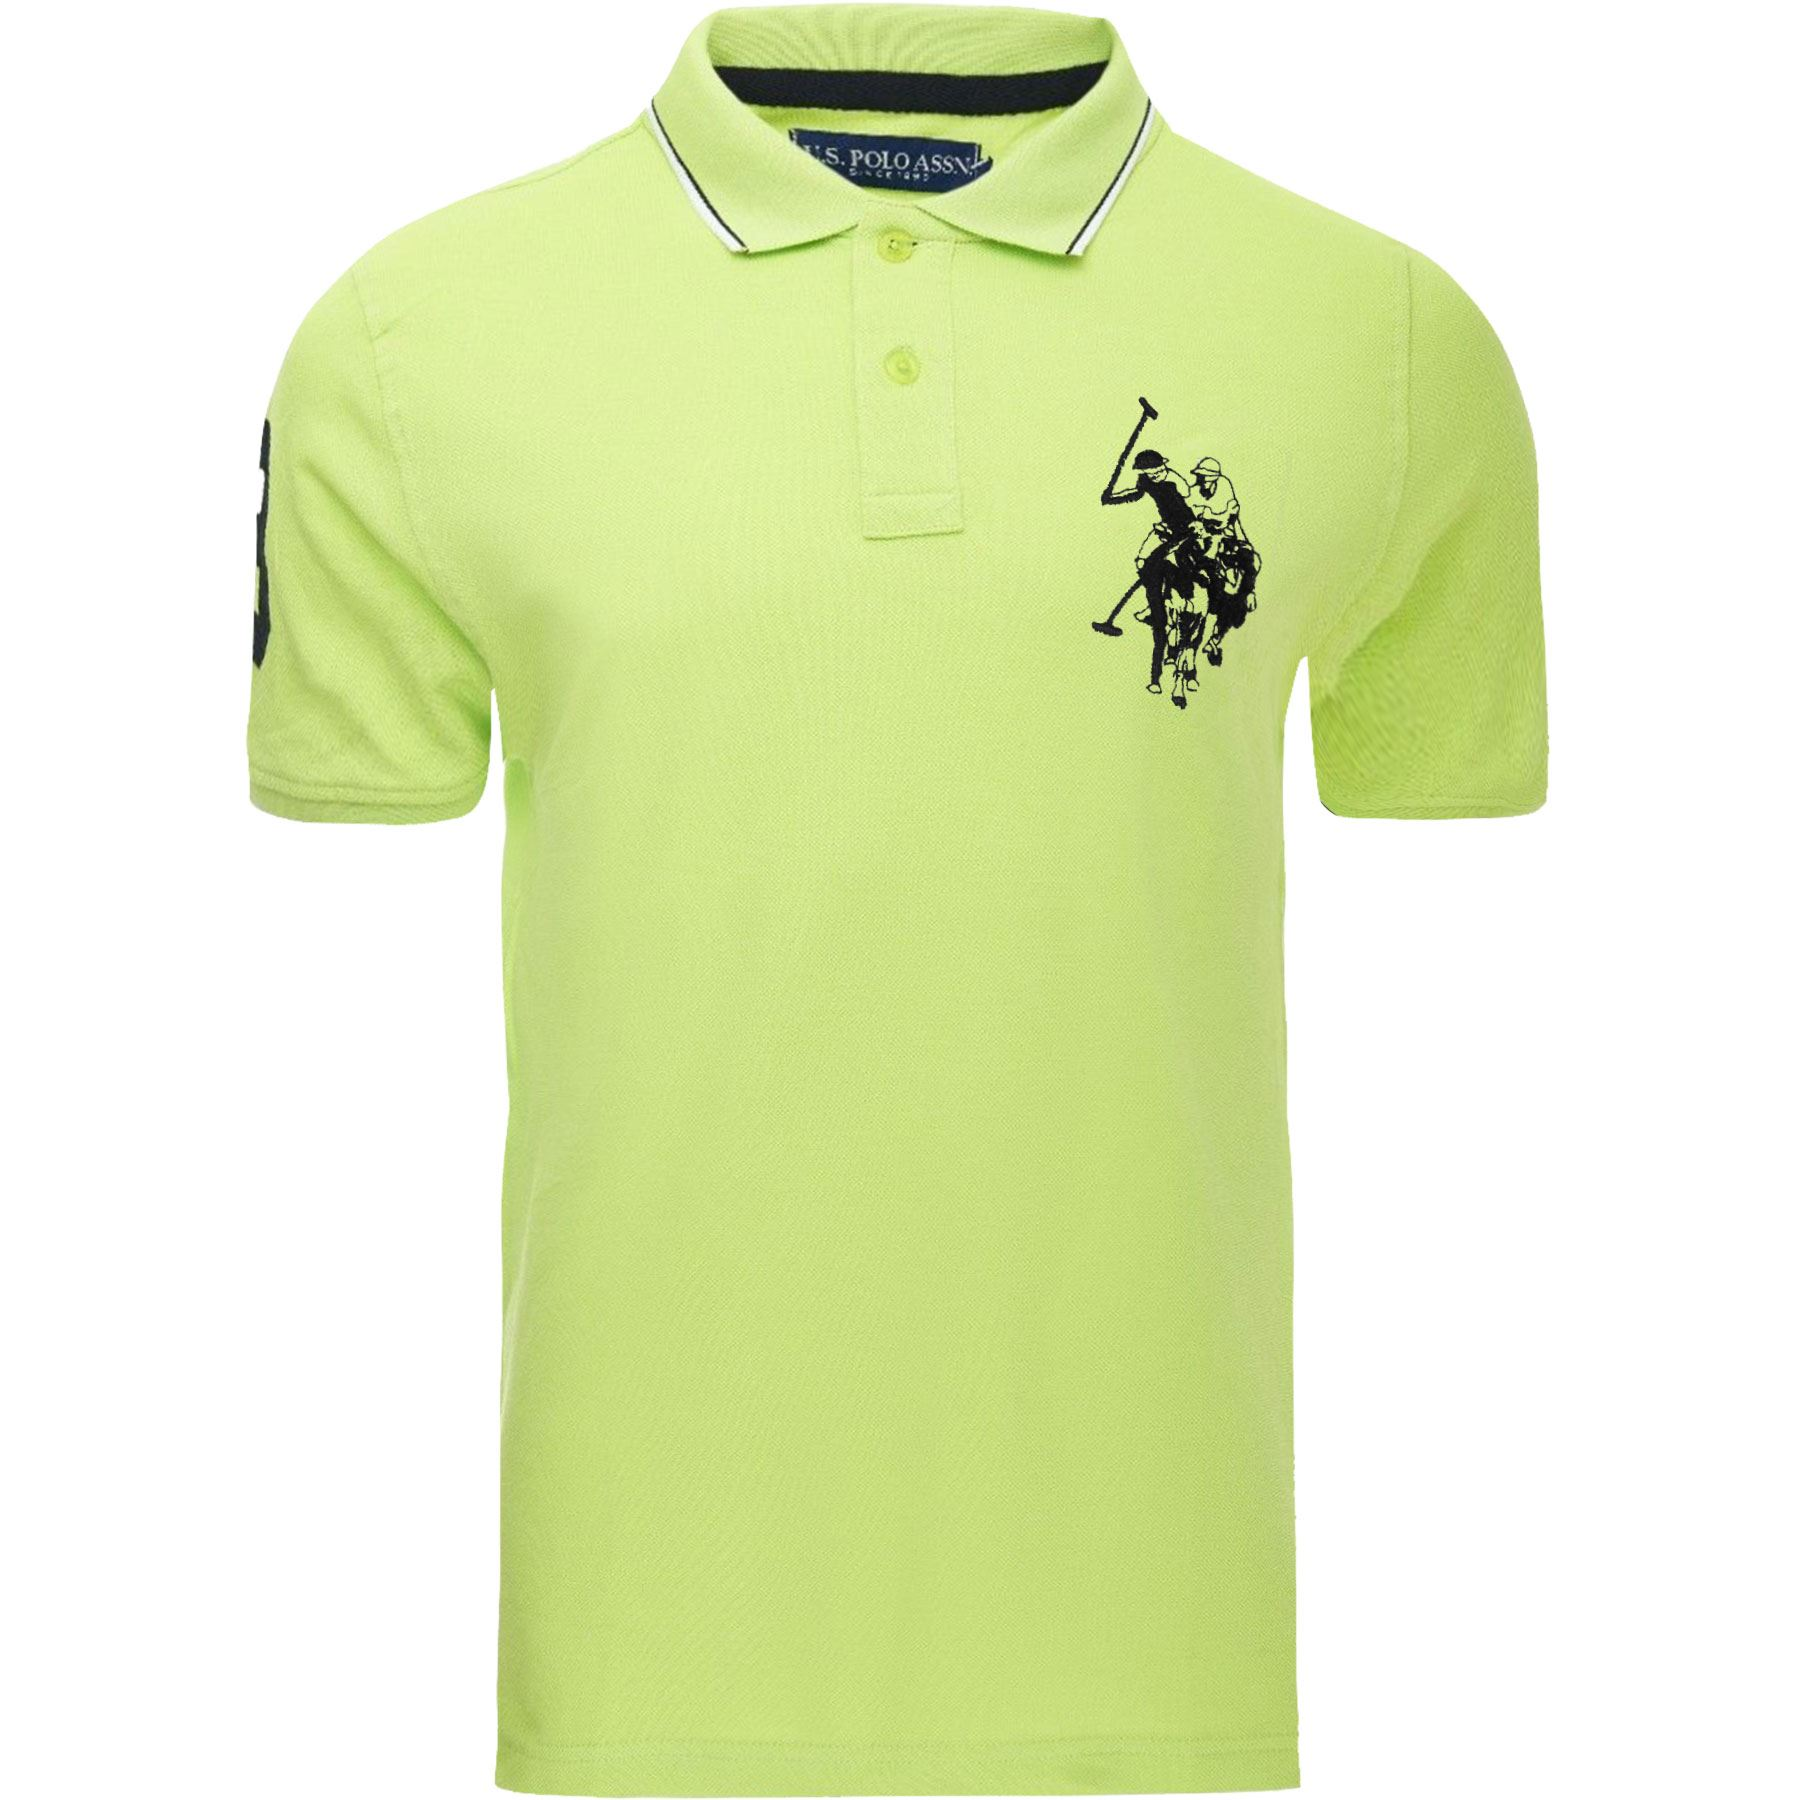 Buy Nice Polo Shirt Brands 64 Off Share Discount